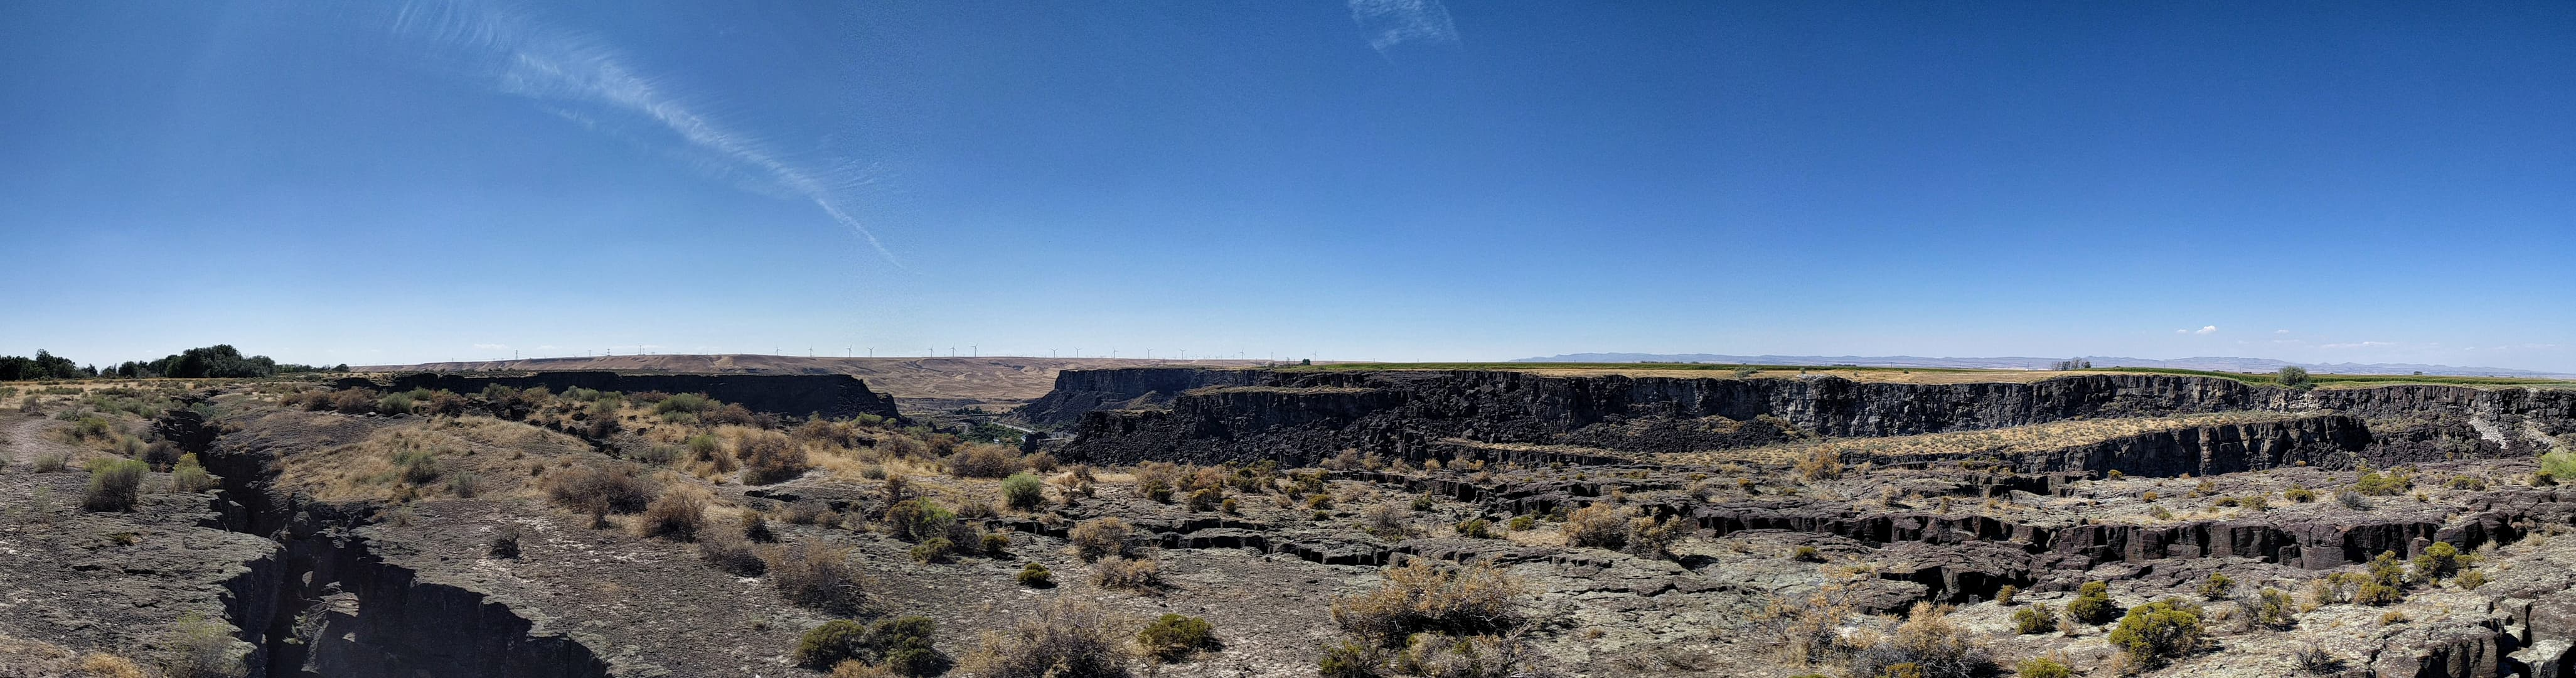 A panoramic view of the Malad River Gorge in Idaho. A wind farm can just be seen in the distance.